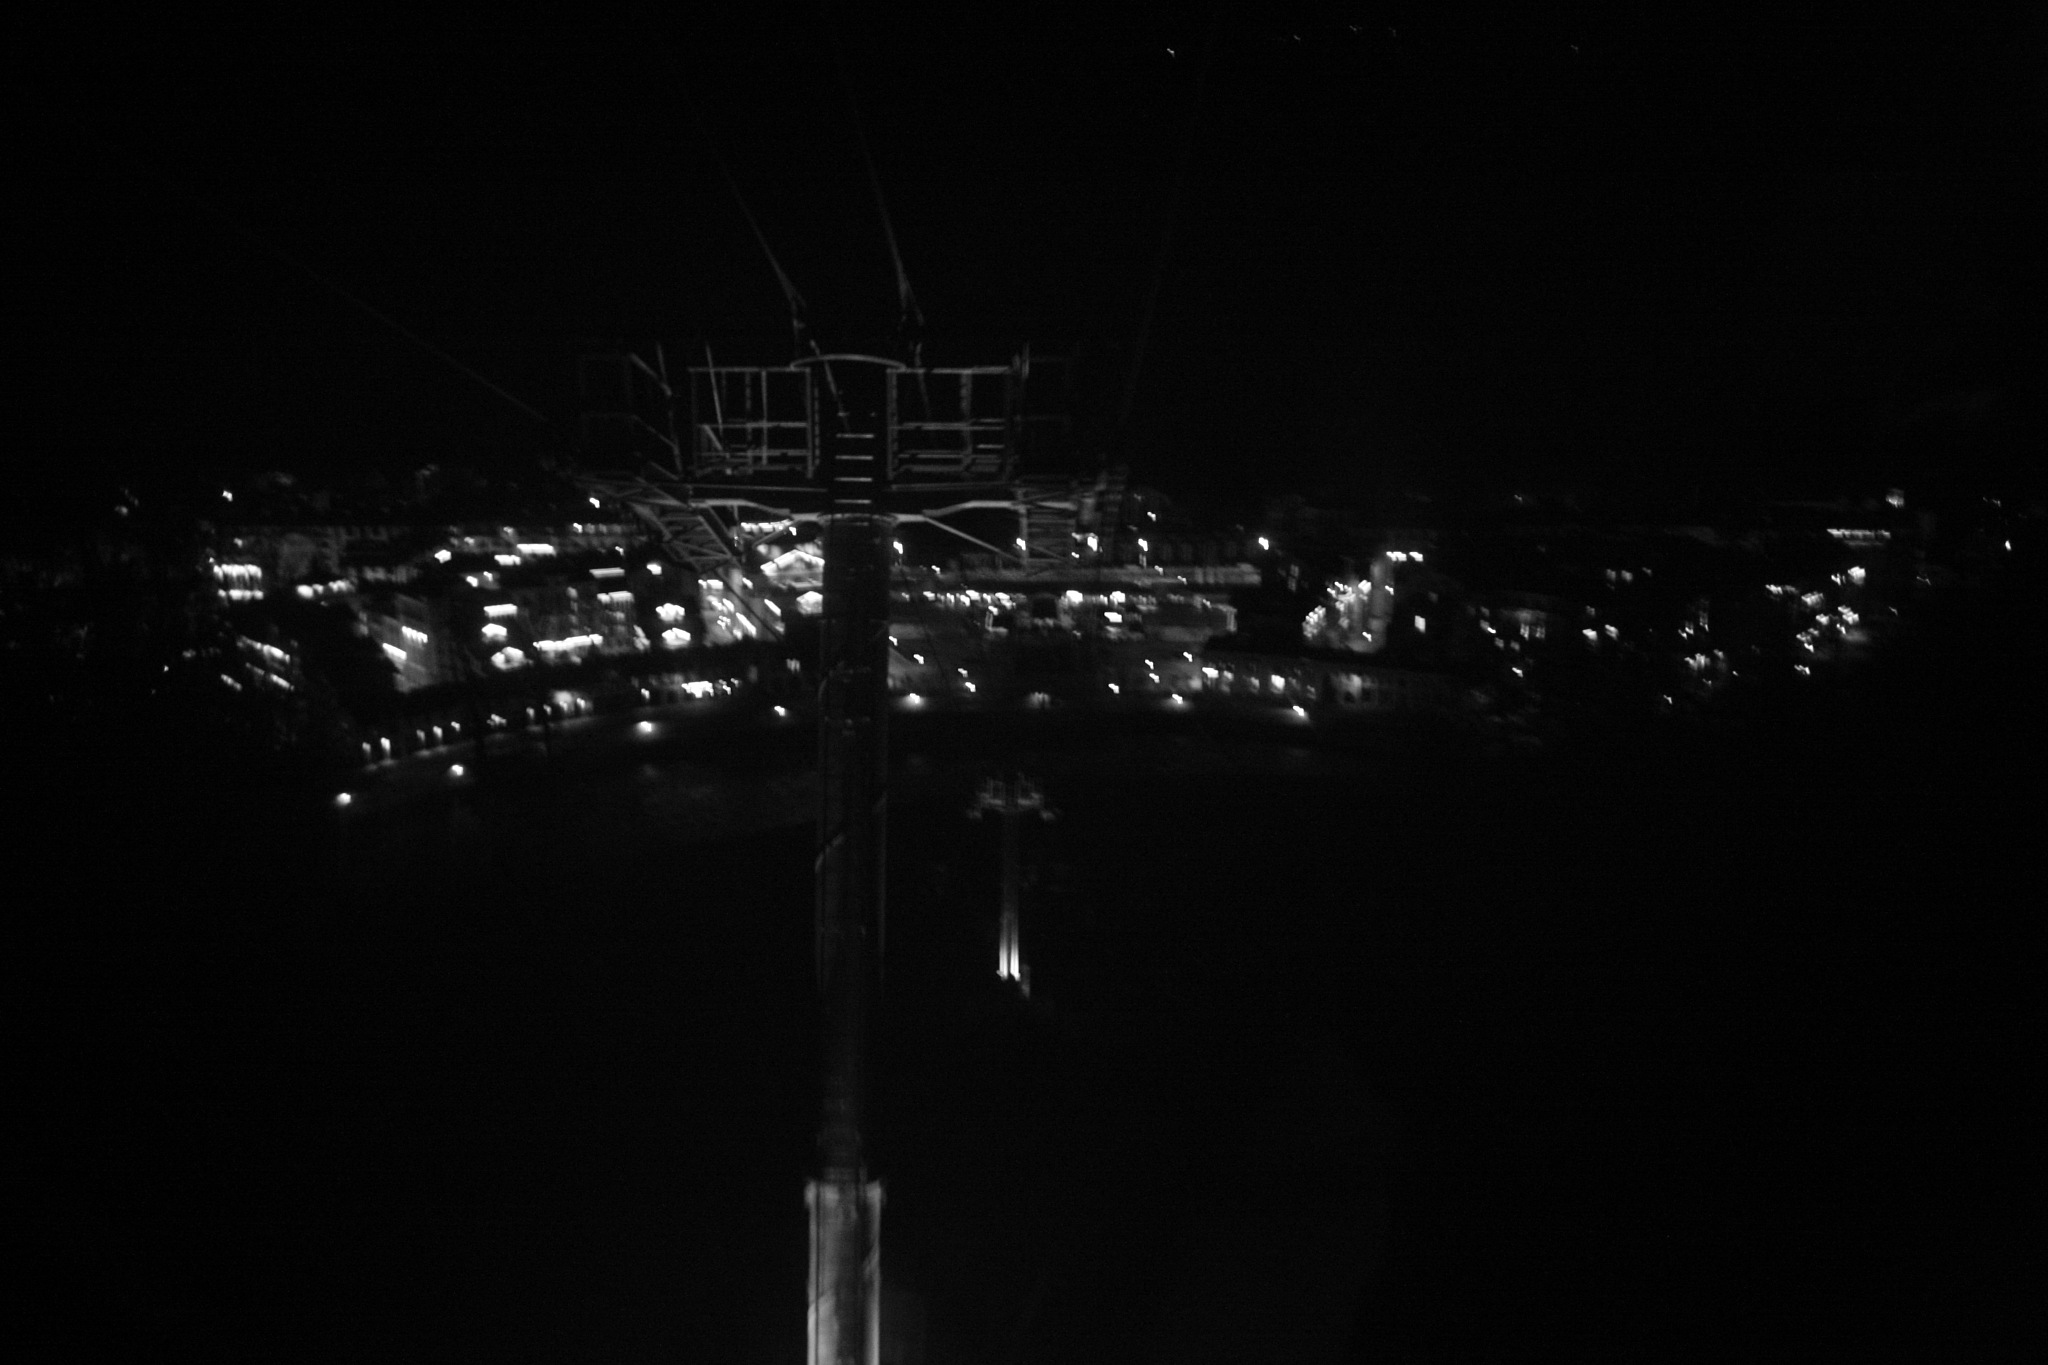 Night cable car.4 by Bobbyus